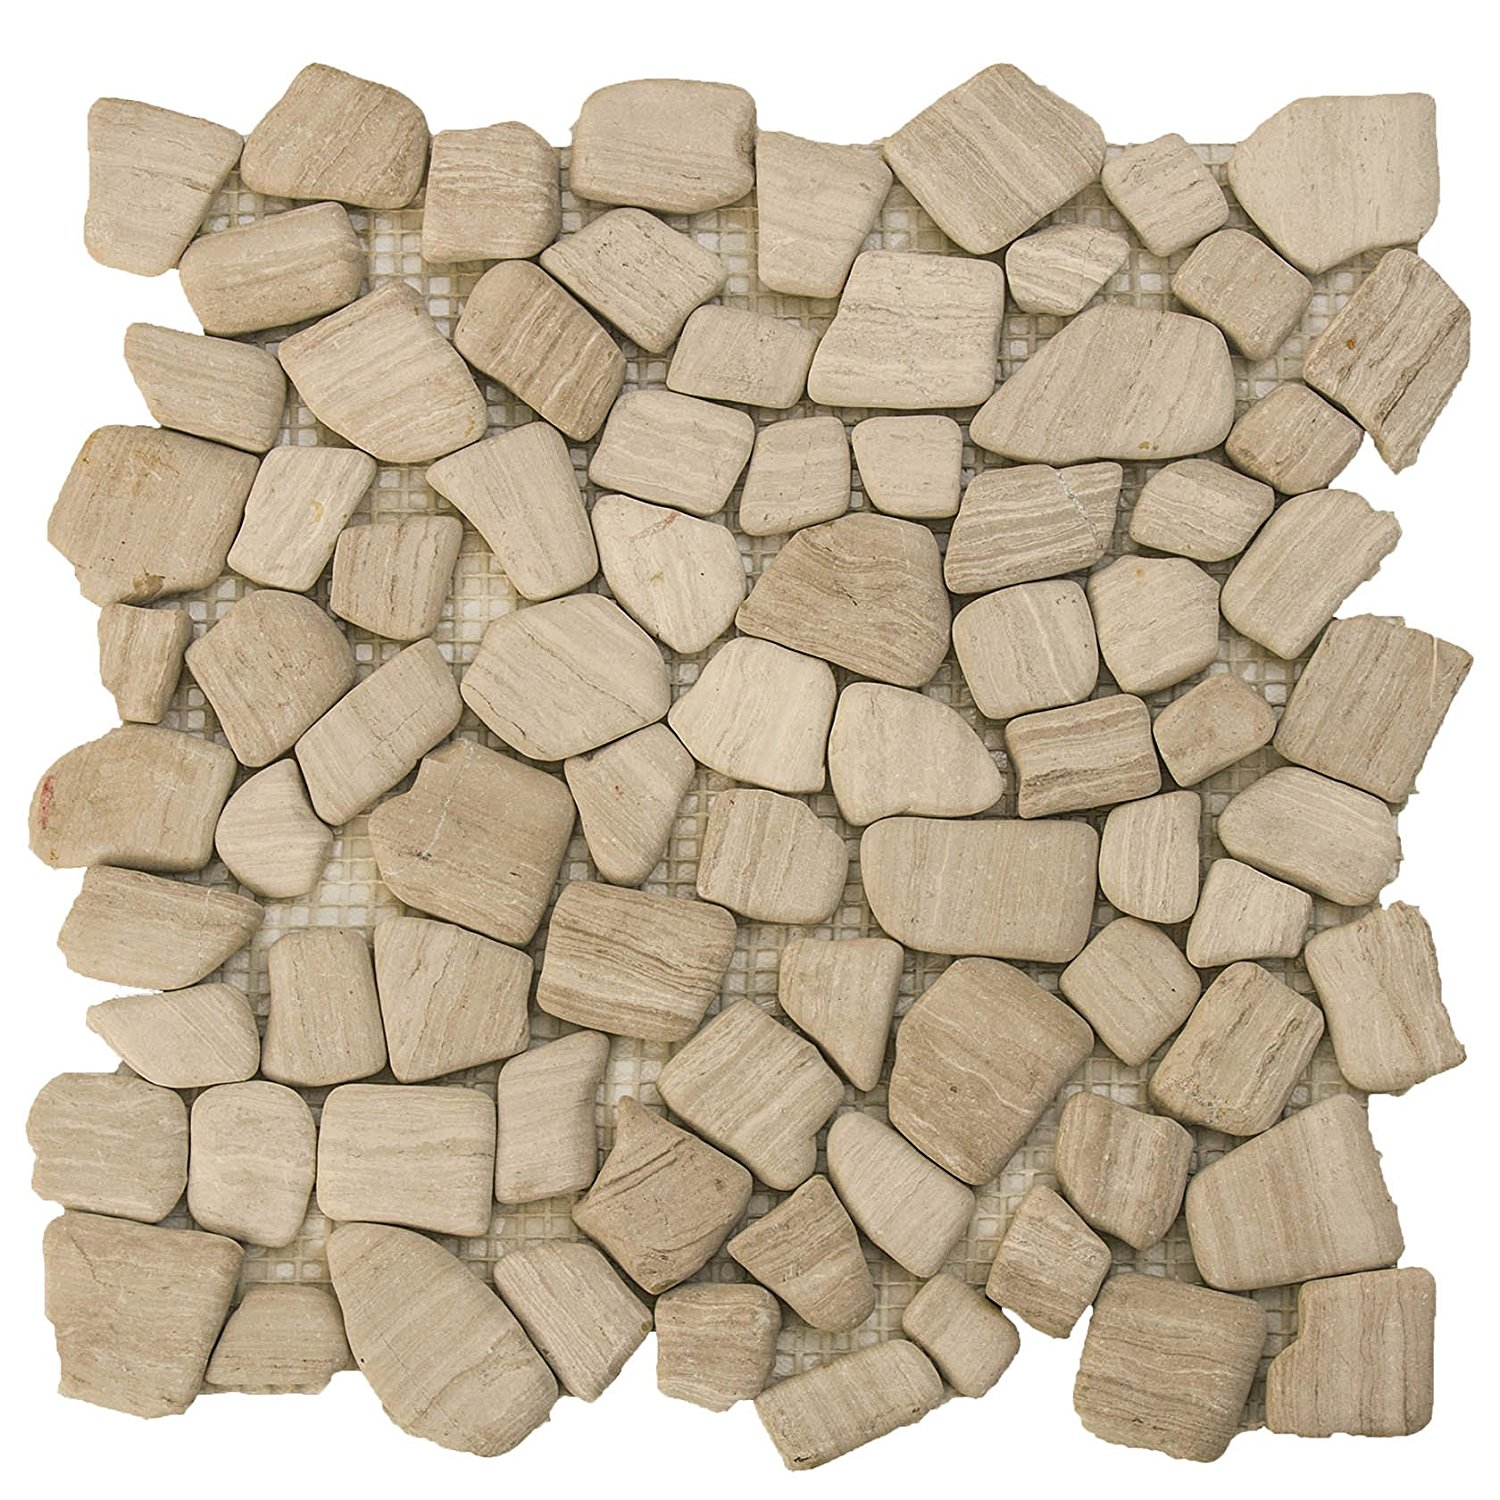 """Marble Mosaic Tile, """"River Rock Collection"""", MM 9502 - White Oak, Mixed Rounds, 12""""X12"""", Tumbled (Sample (6""""X4""""))"""